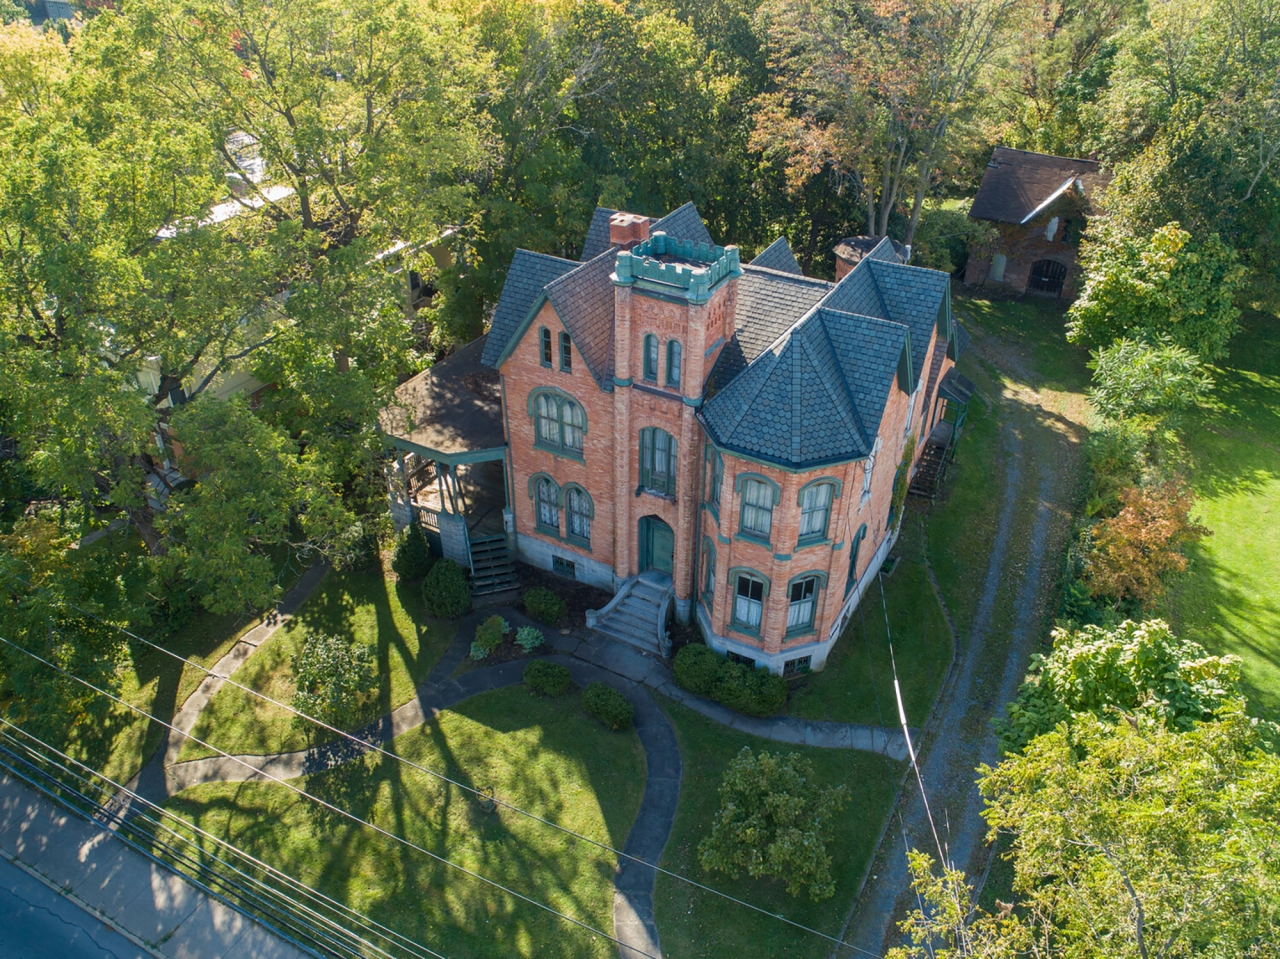 10 Bedroom Mansion In New York Offered For Only 50 000 With One Catch Fox 2